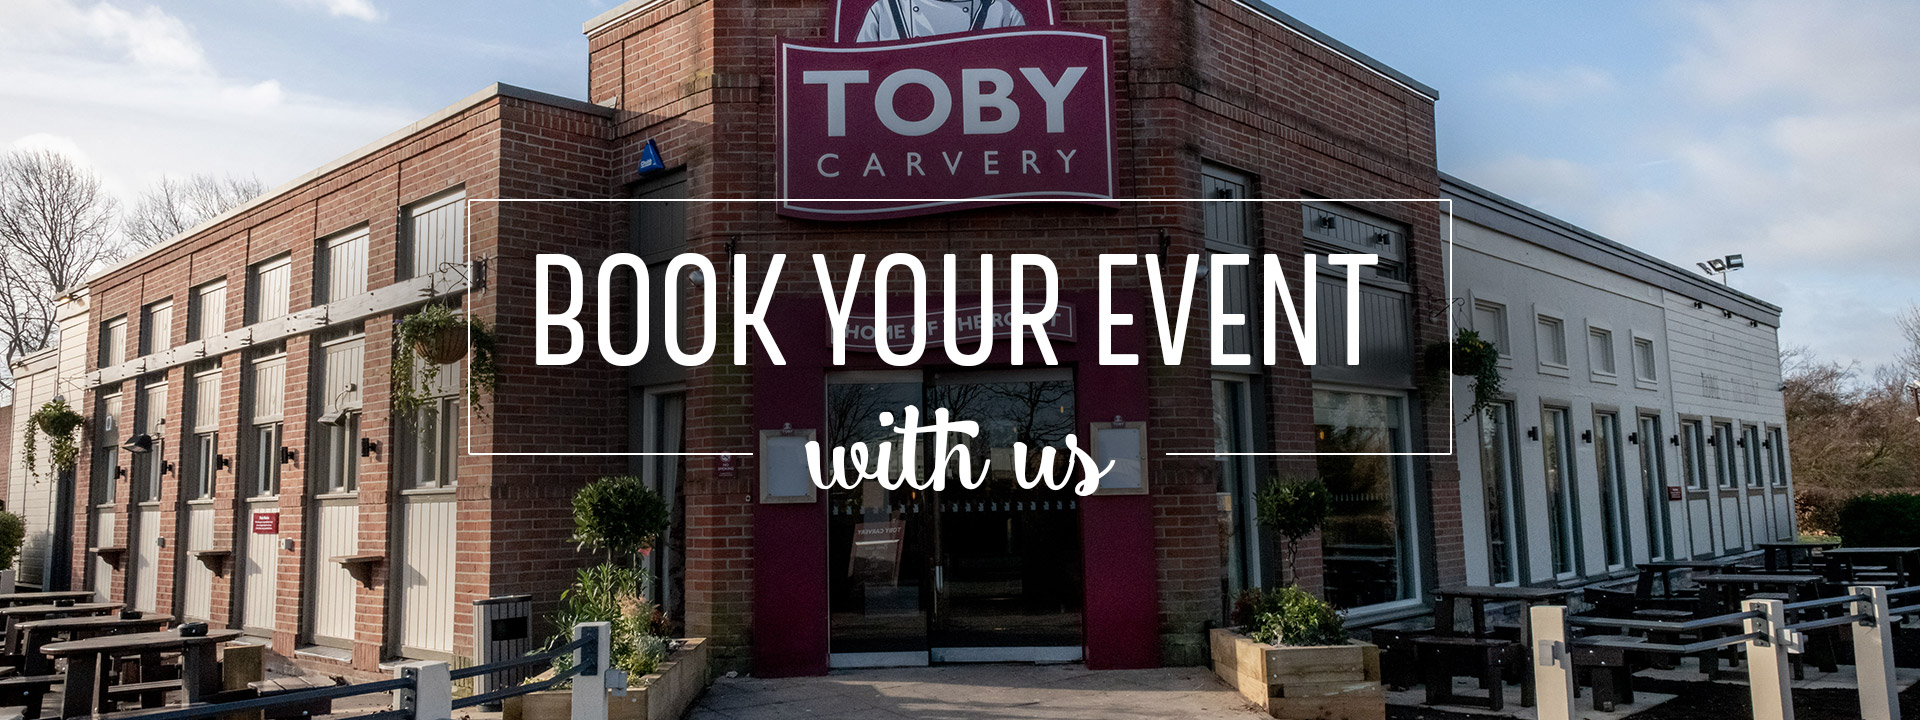 Events at Toby Carvery Ormskirk